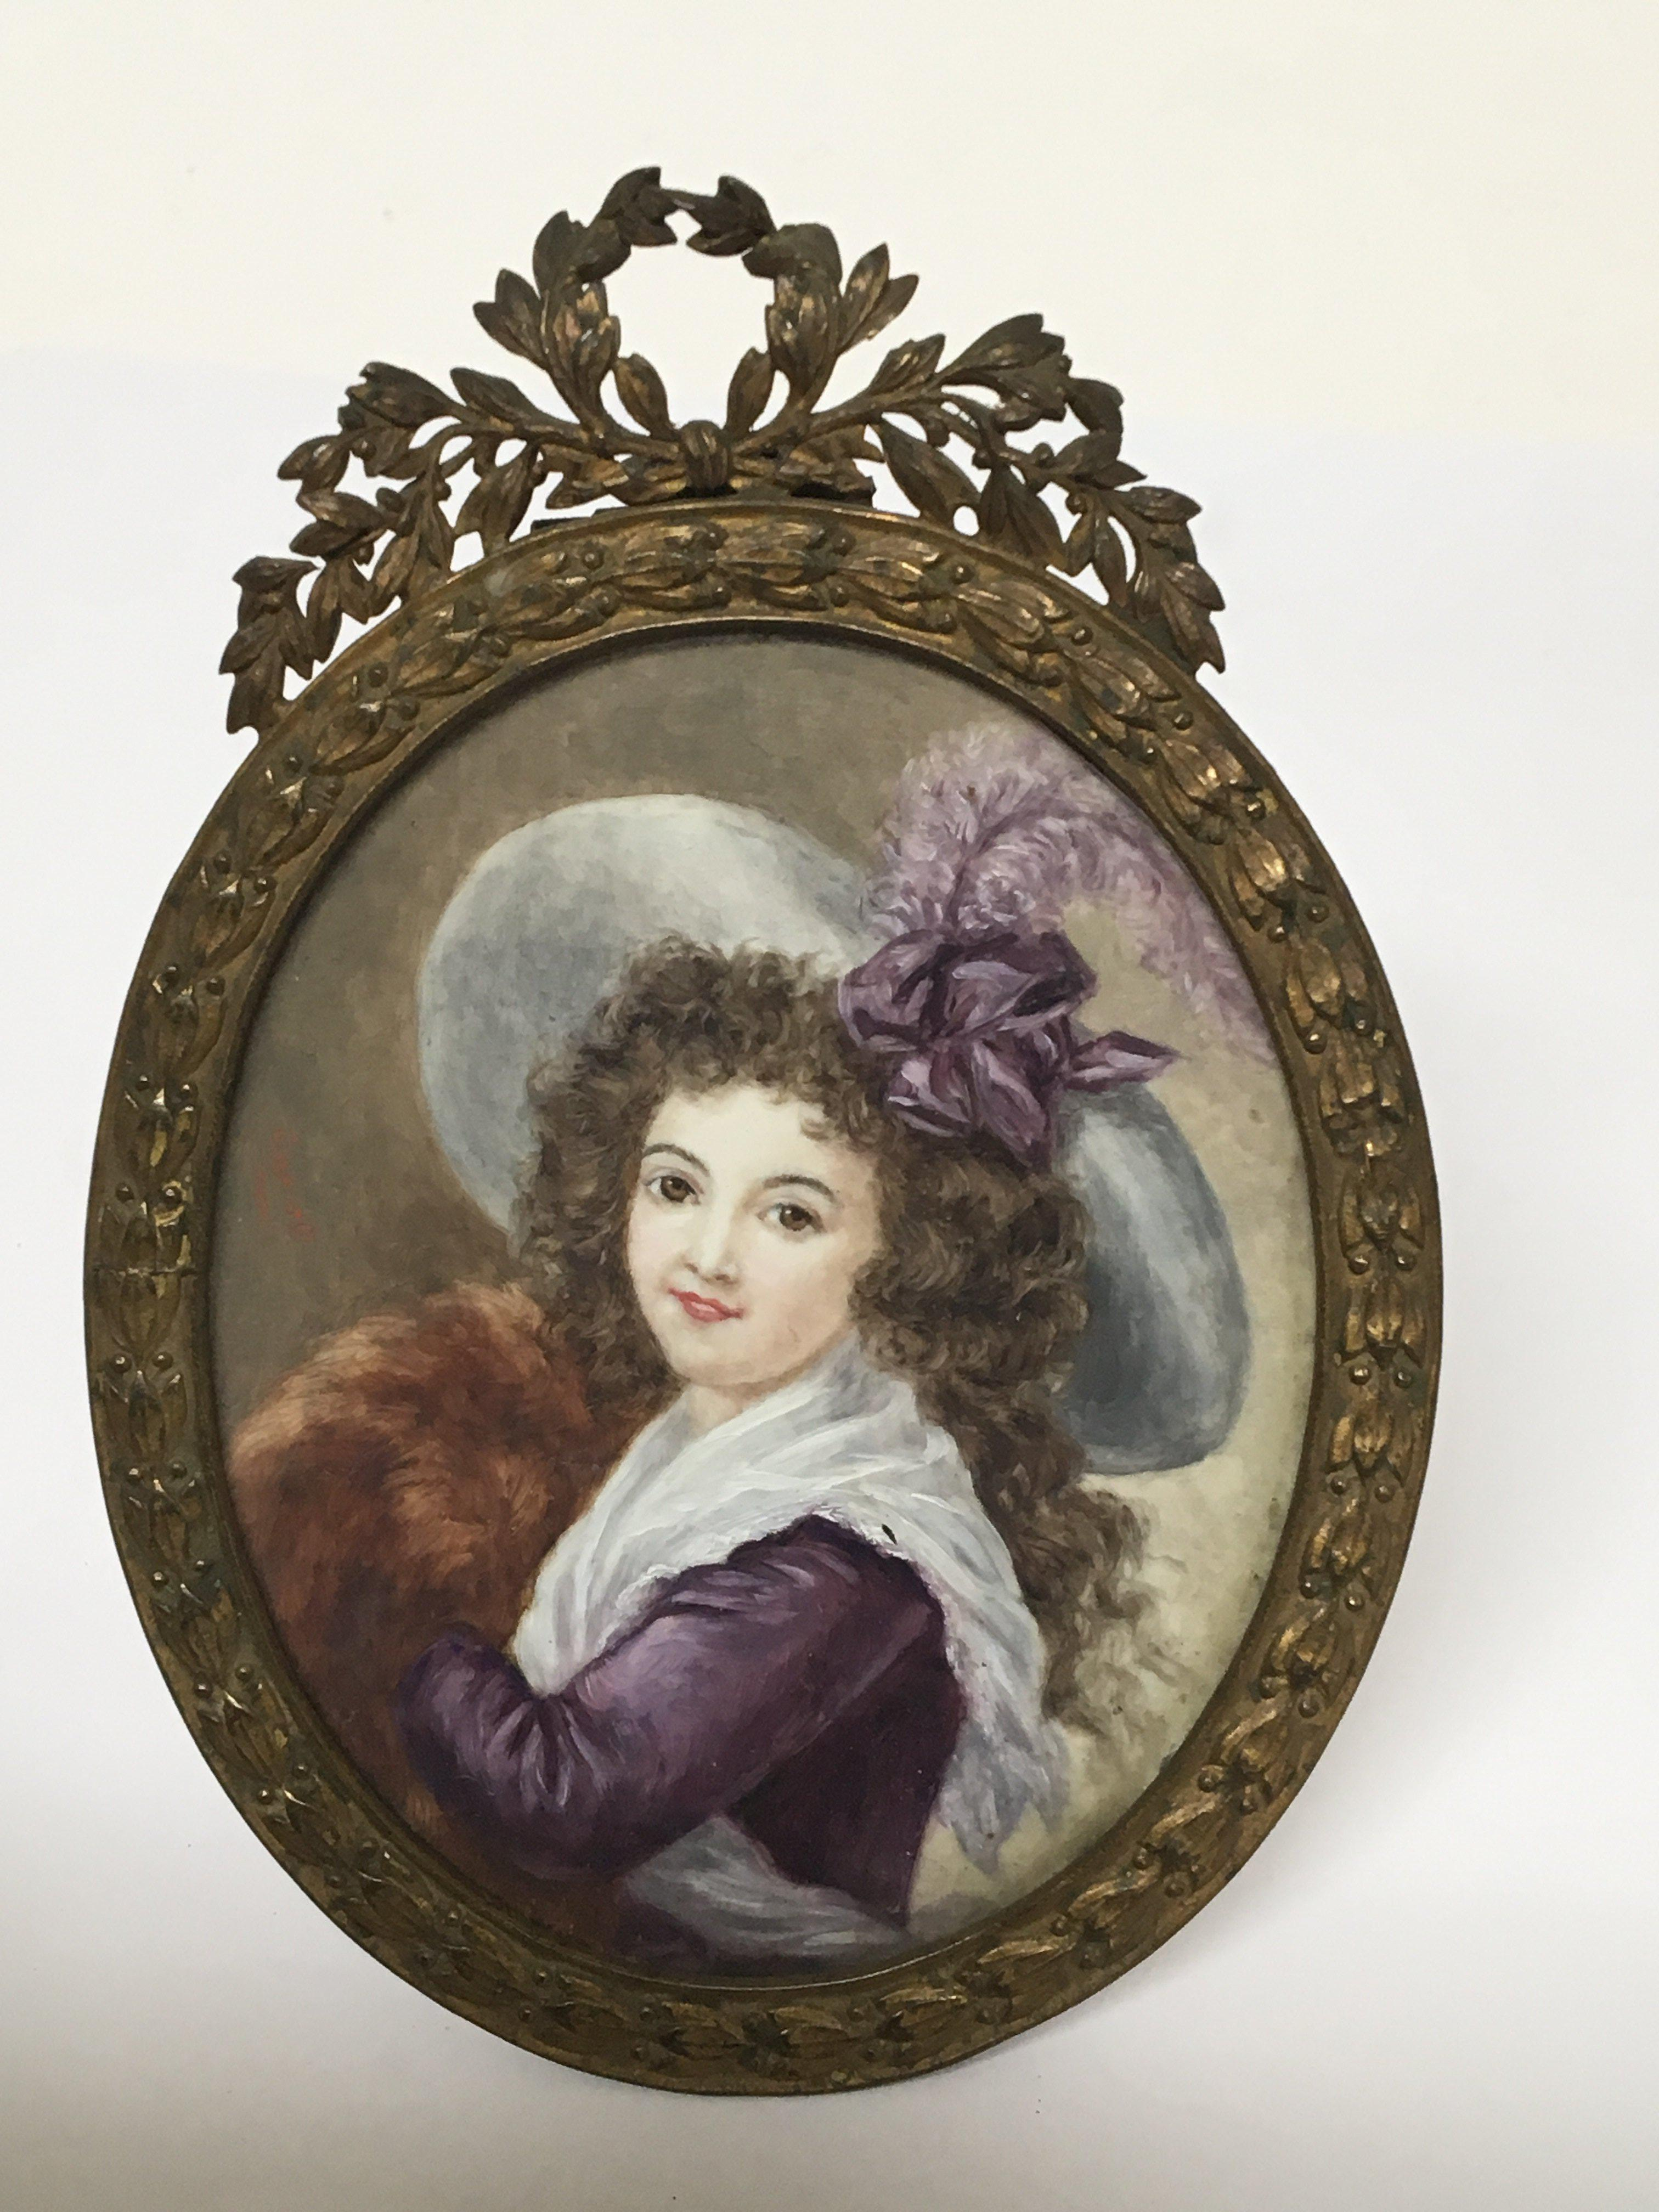 Lot 651 - A Quality Early 20th Century Portrait miniature of